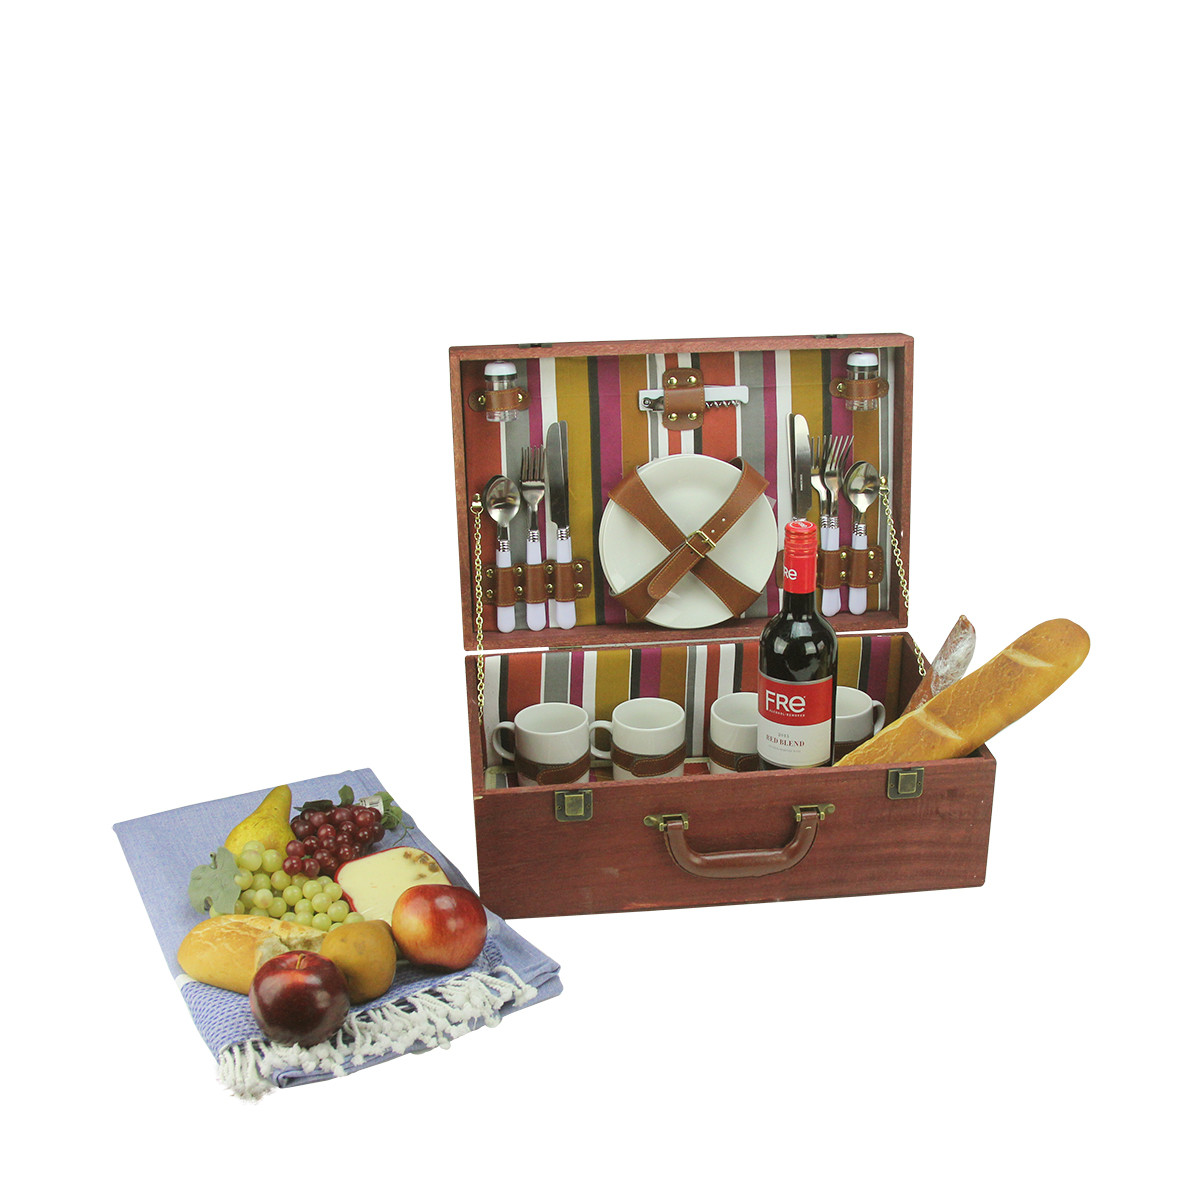 Wooden Picnic Basket Set : Person hand wooden red striped picnic basket set with